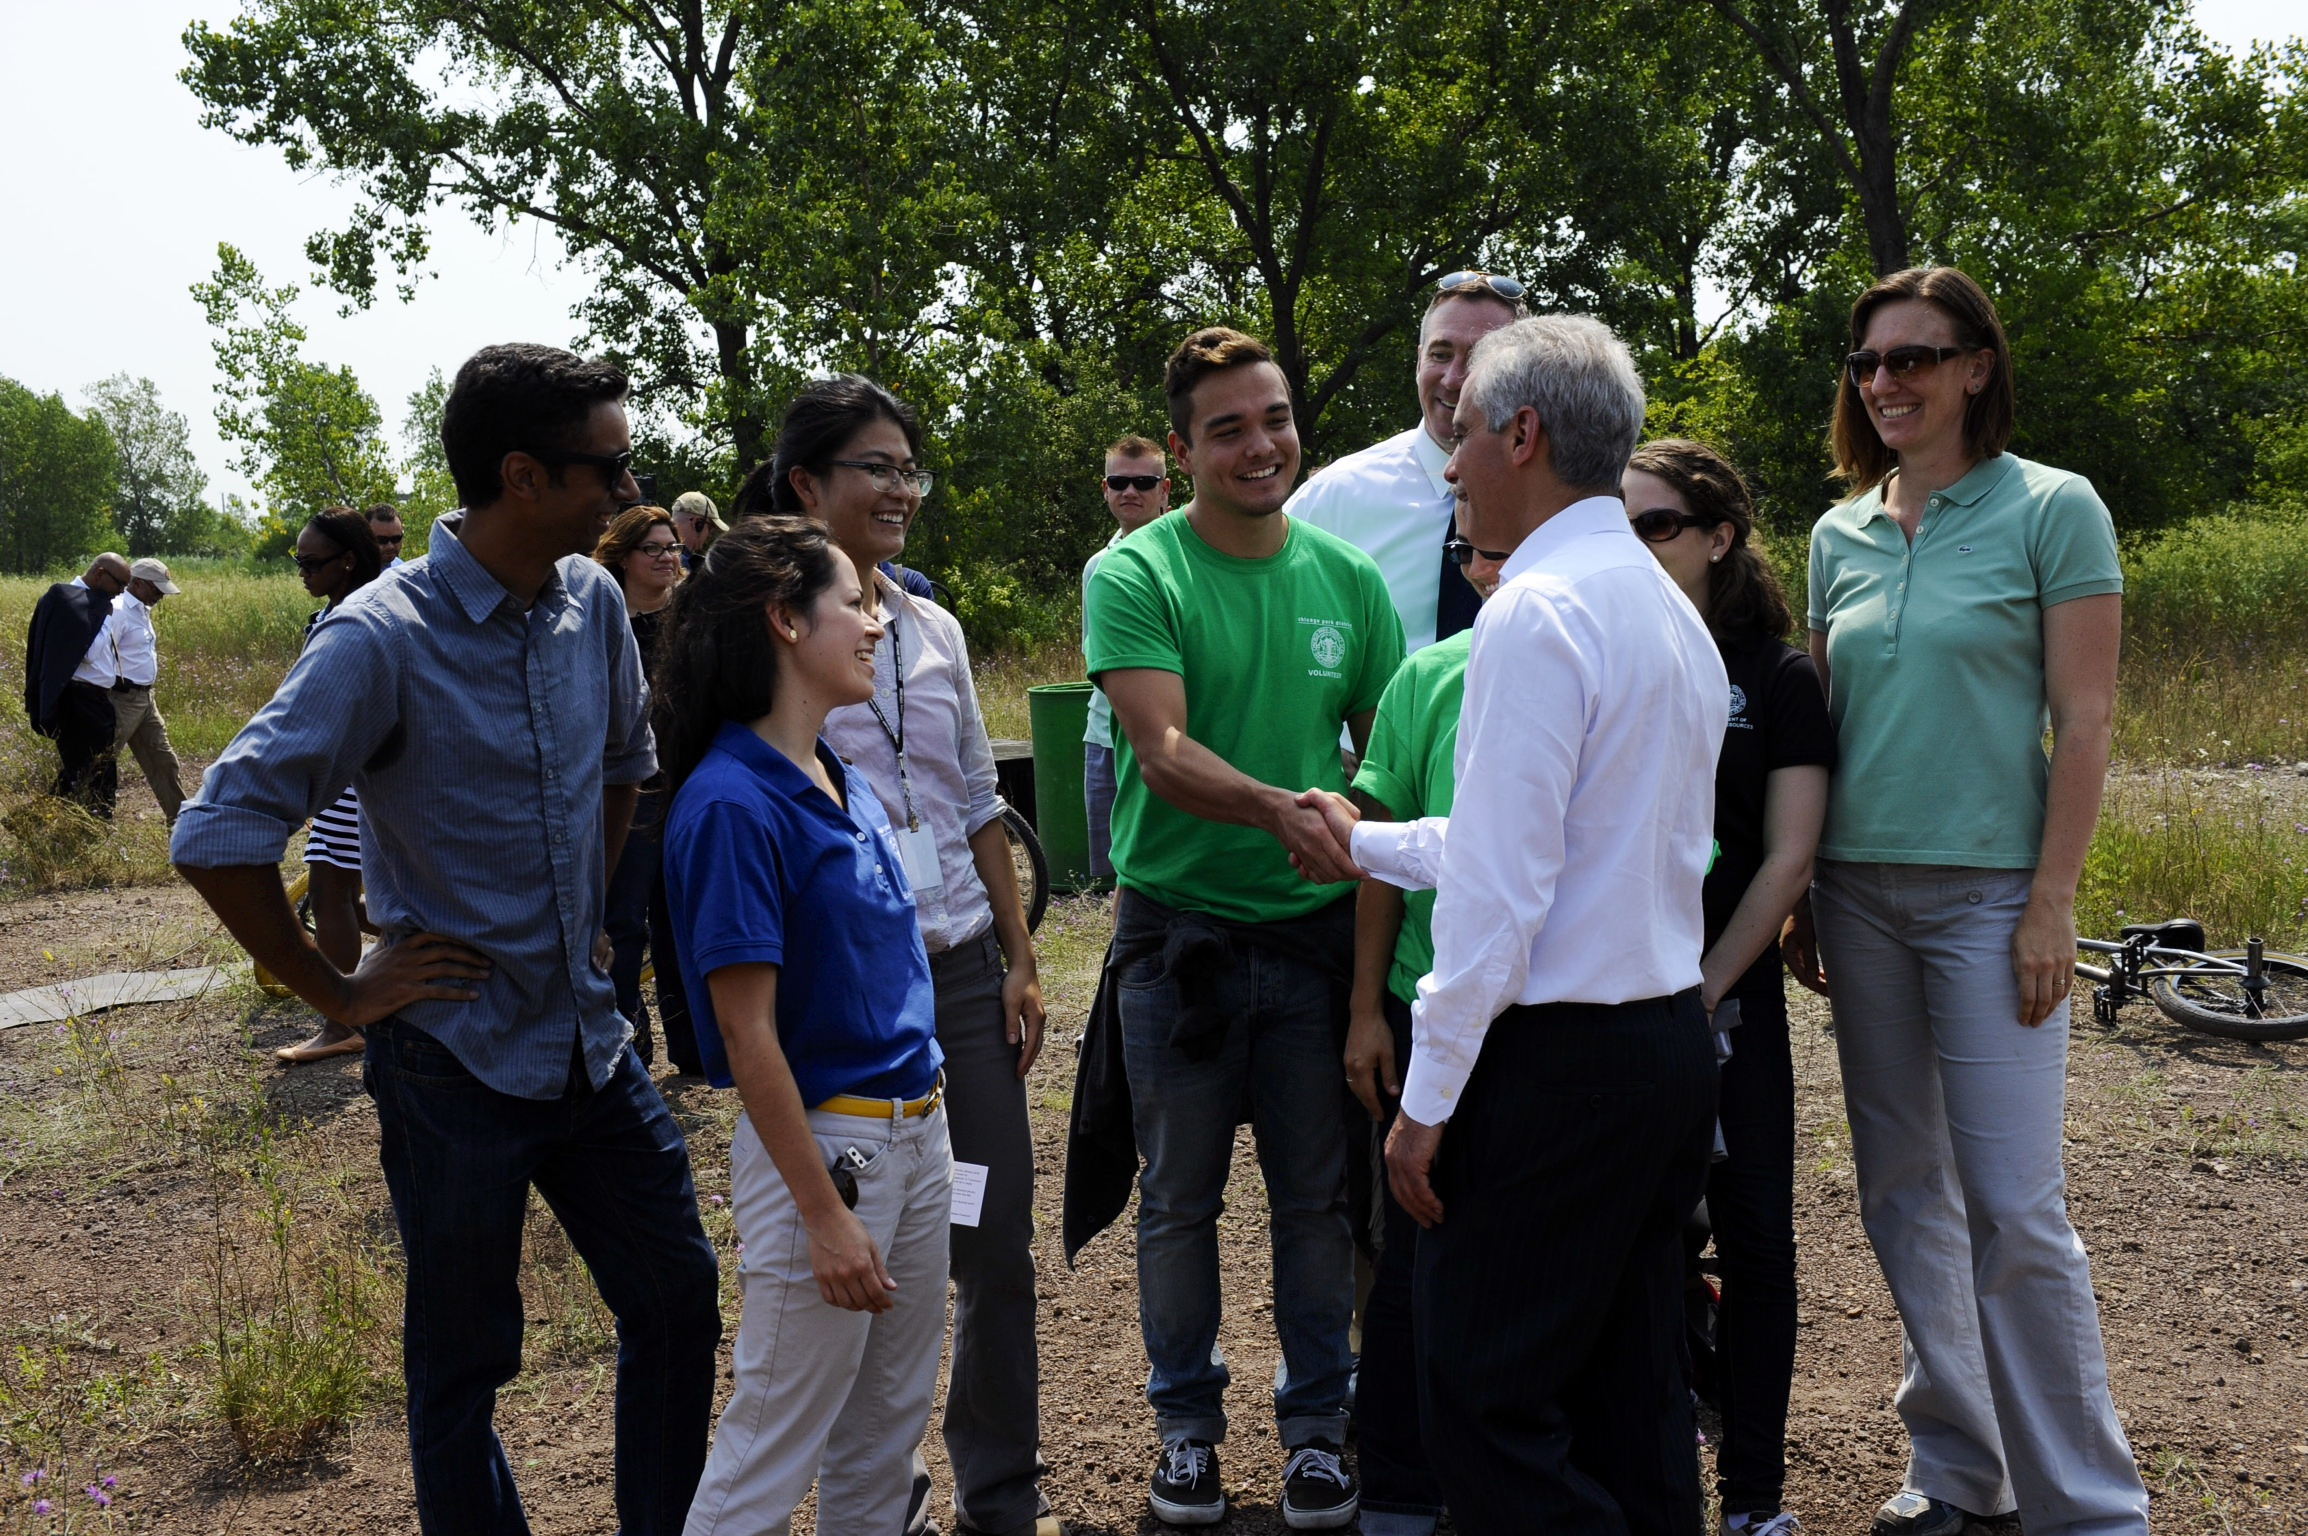 Mayor Emanuel, Chicago Park District Announce Calumet Bike Park At Big Marsh